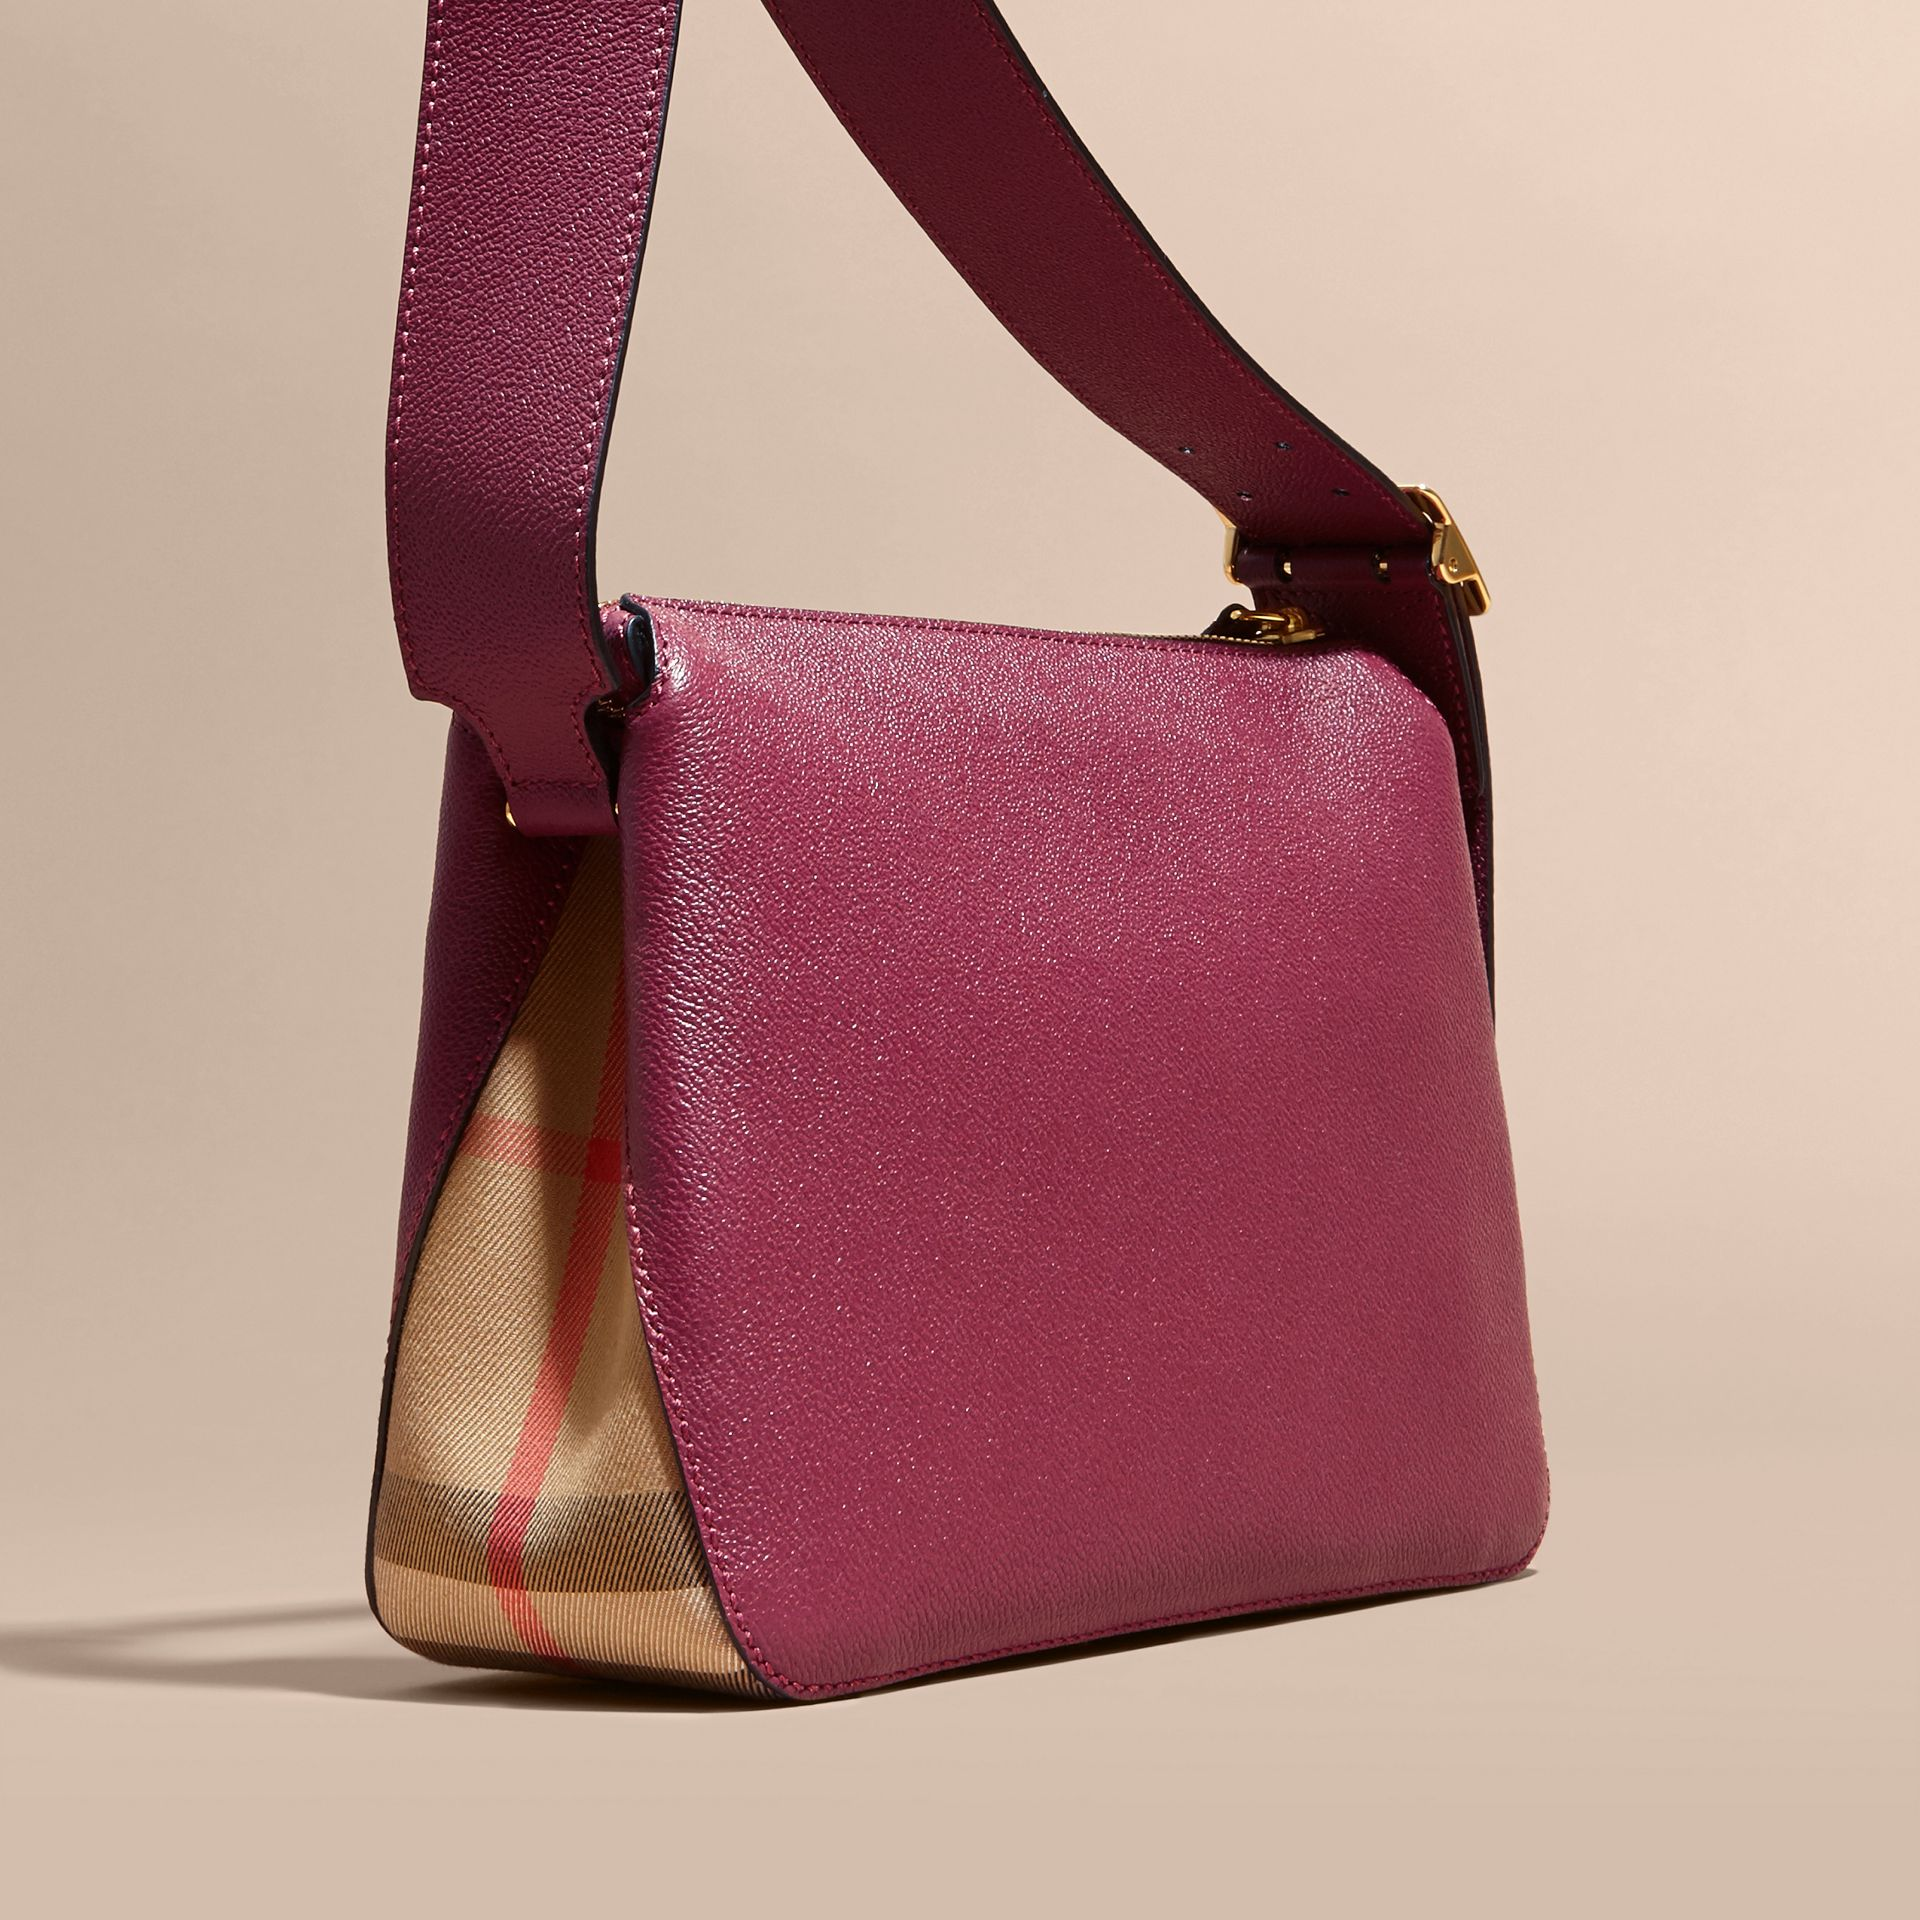 Buckle Detail Leather and House Check Crossbody Bag in Dark Plum - Women | Burberry - gallery image 4